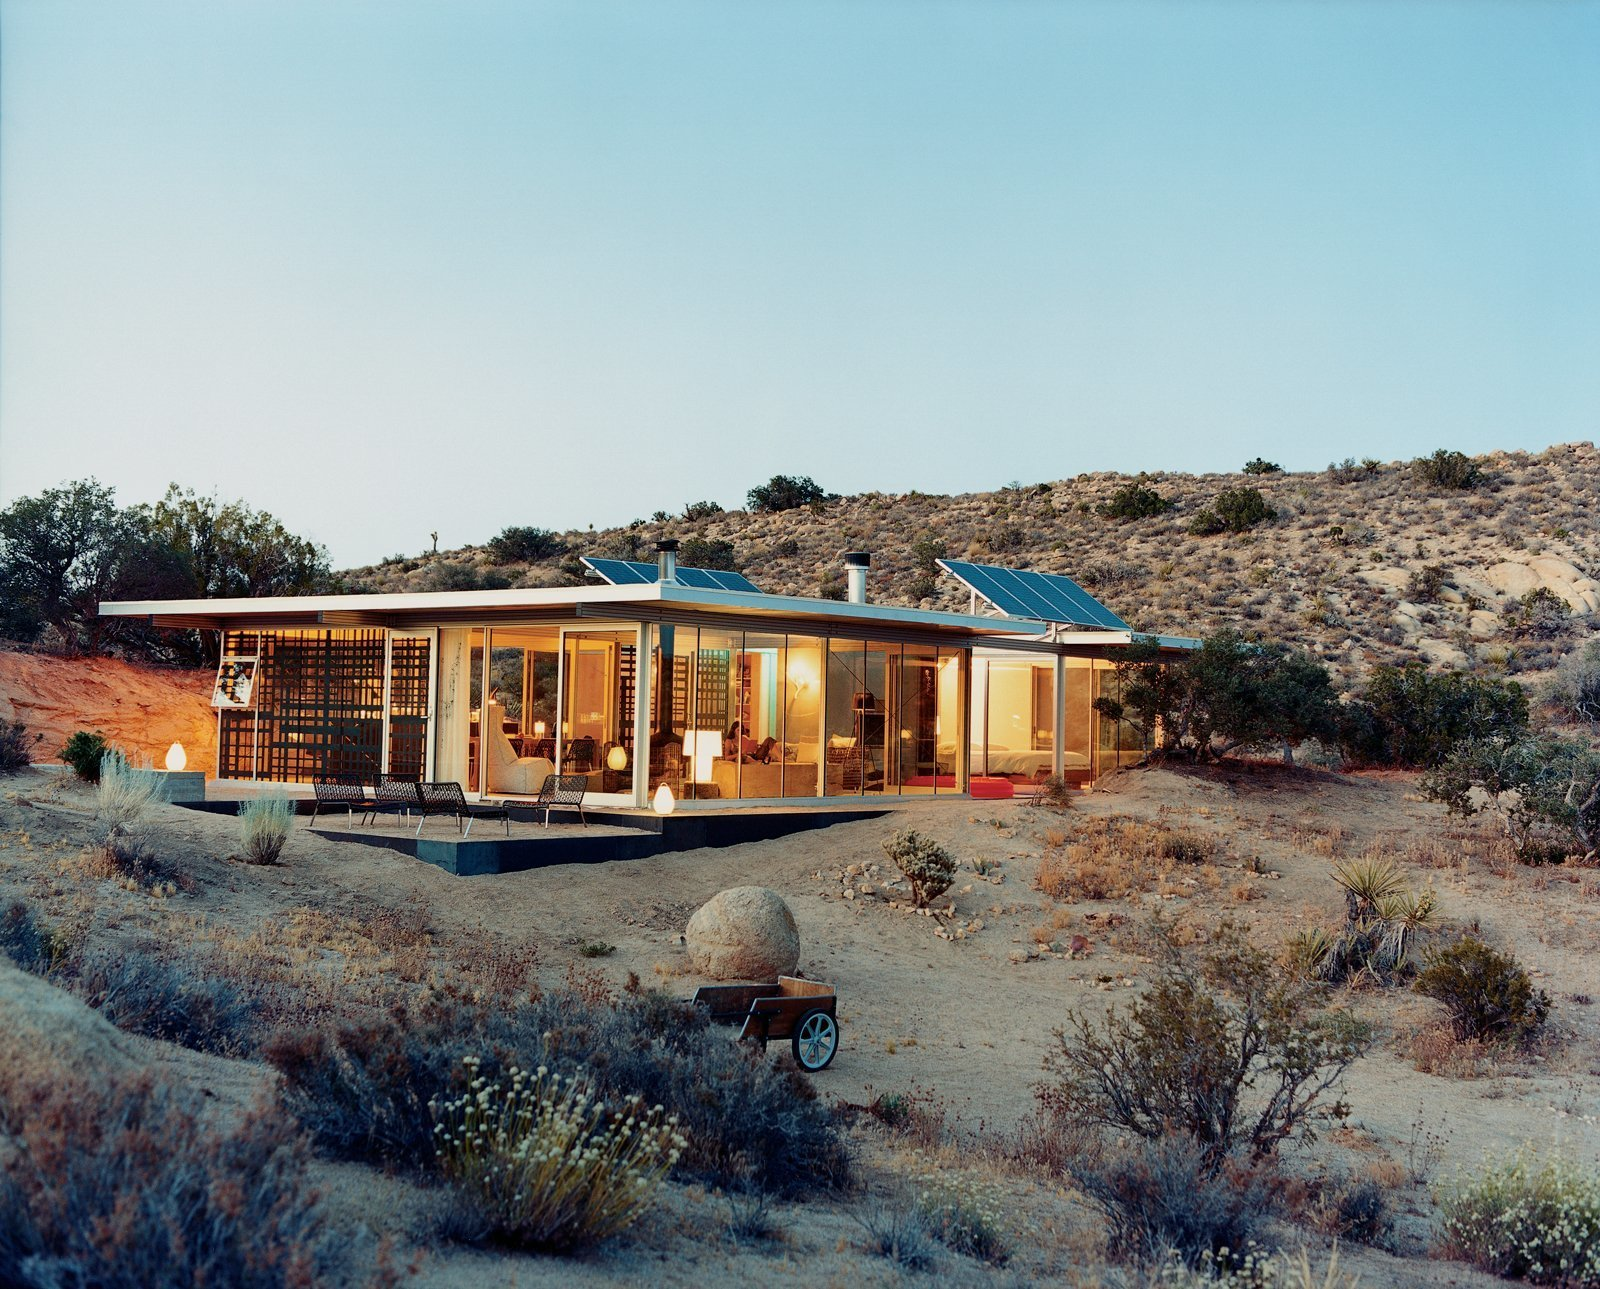 Exterior, Flat, Glass, Green, and Prefab Los Angeles–based design partners Taalman and Koch created this house in Pioneertown, California from prefabricated structural components, and included glass walls on which artists later applied surface graphics. Available for rent through Boutique Homes, this 1,100-square-foot house cost approximately $265,000 to build and is composed of a Bosch aluminum framing system and perforated steel decking roof. The interiors floor are equipped with radiant heating and cabinets were built out of Formica or plastic-laminated plywood.  Best Exterior Glass Green Photos from 7 Incredible Prefab Homes You Can Rent For Your Next Holiday